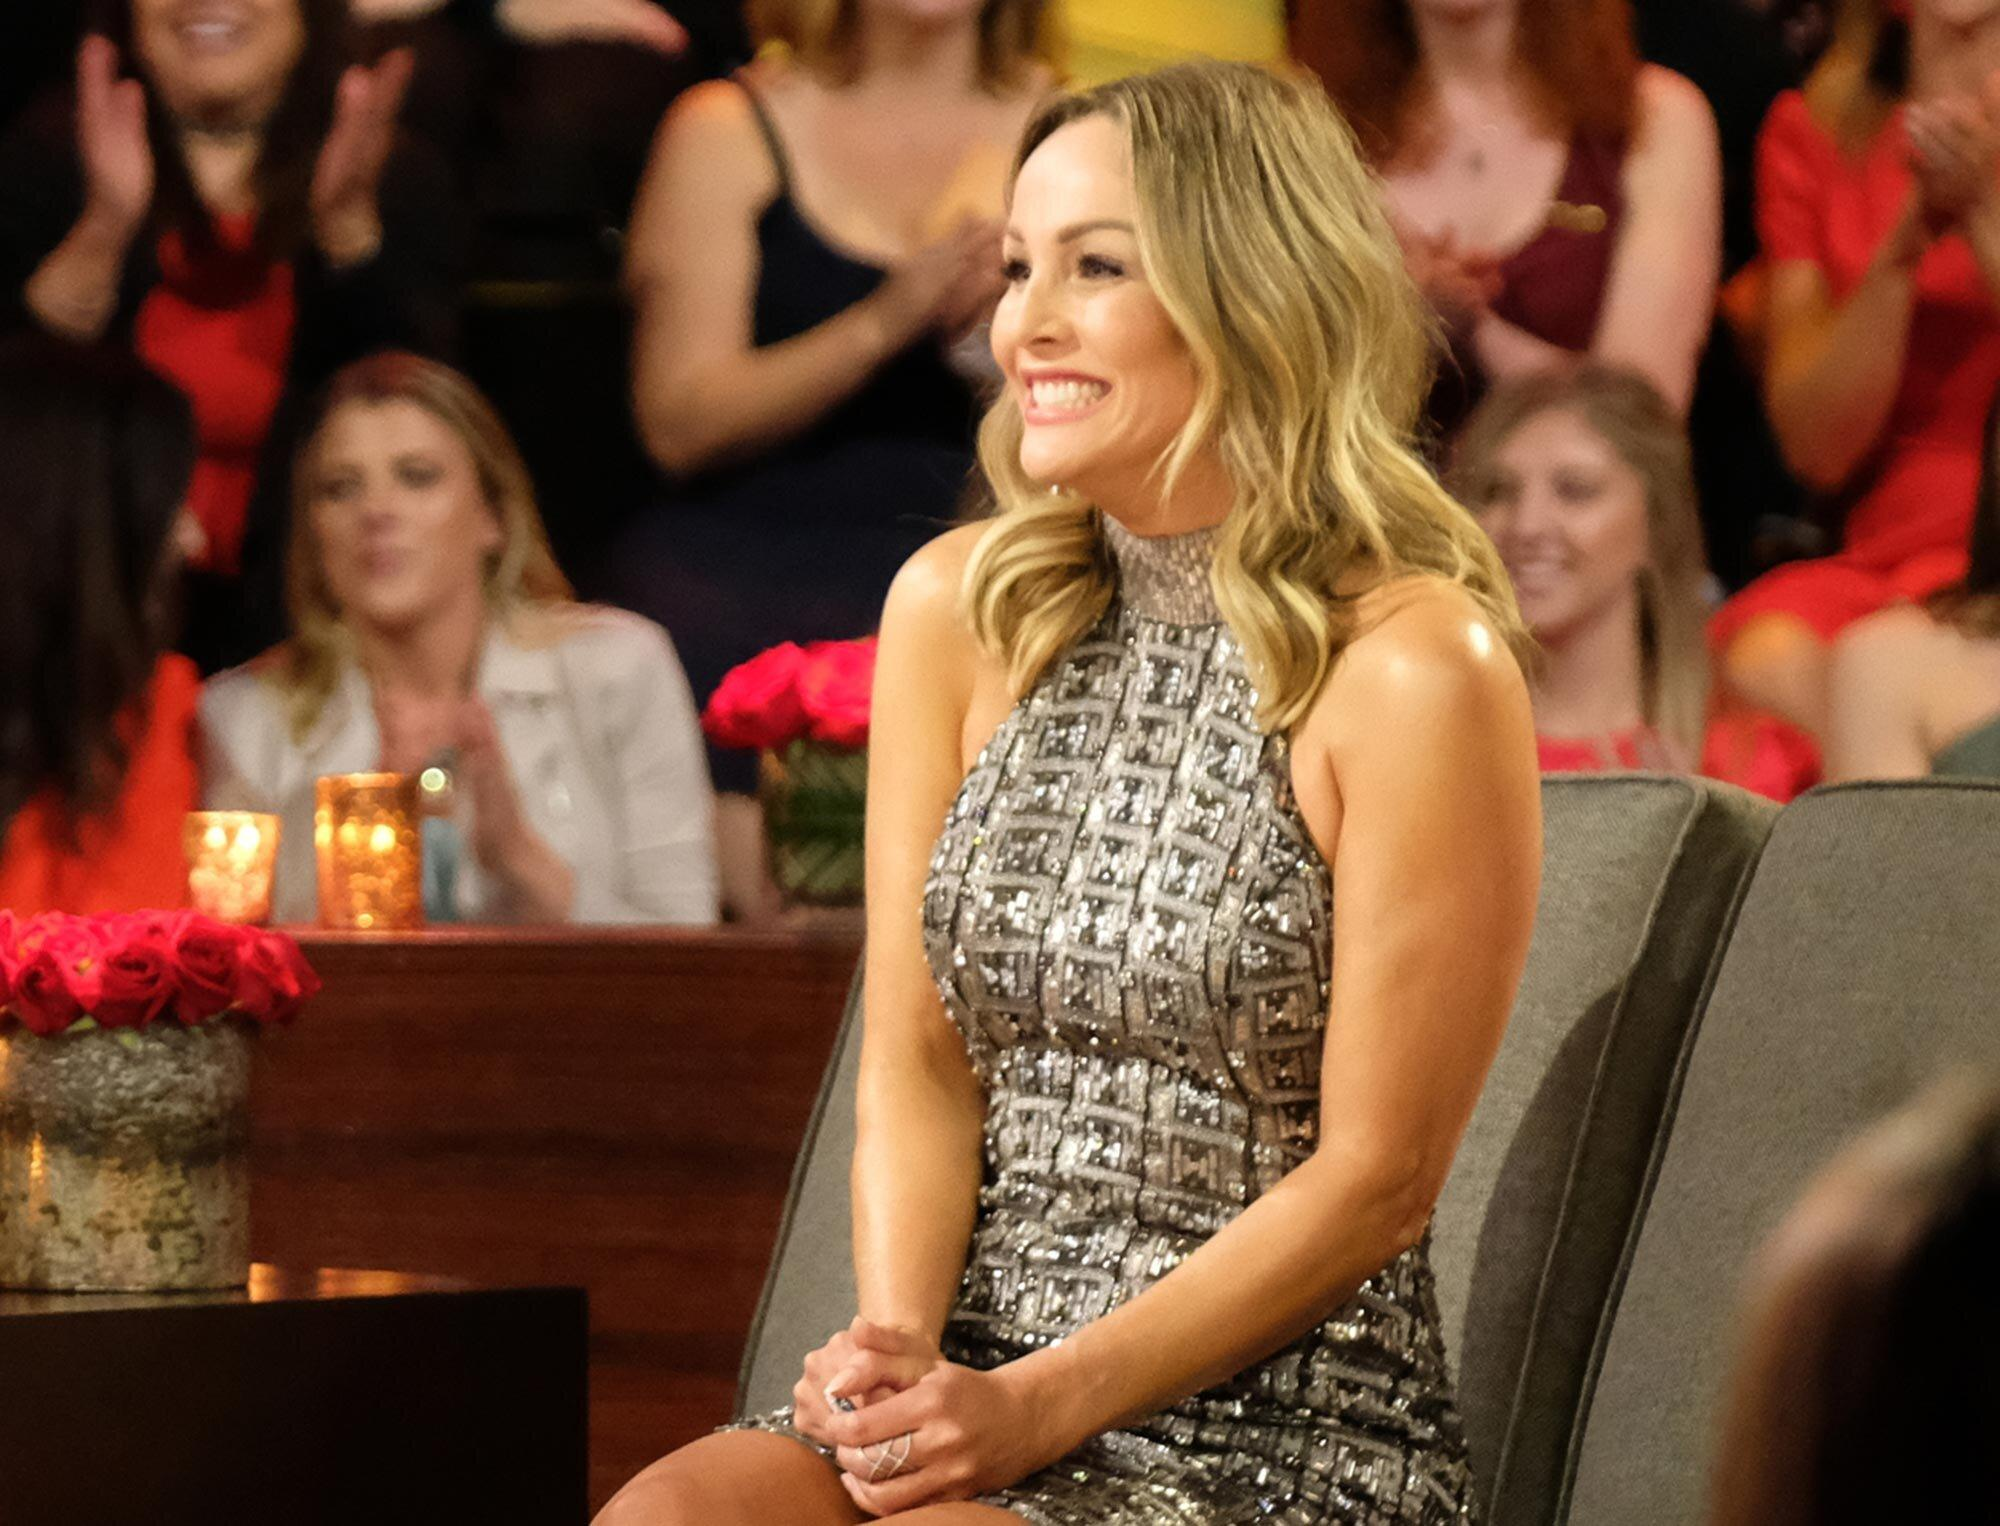 Angie Kents Top Four On The Bachelorette Revealed In